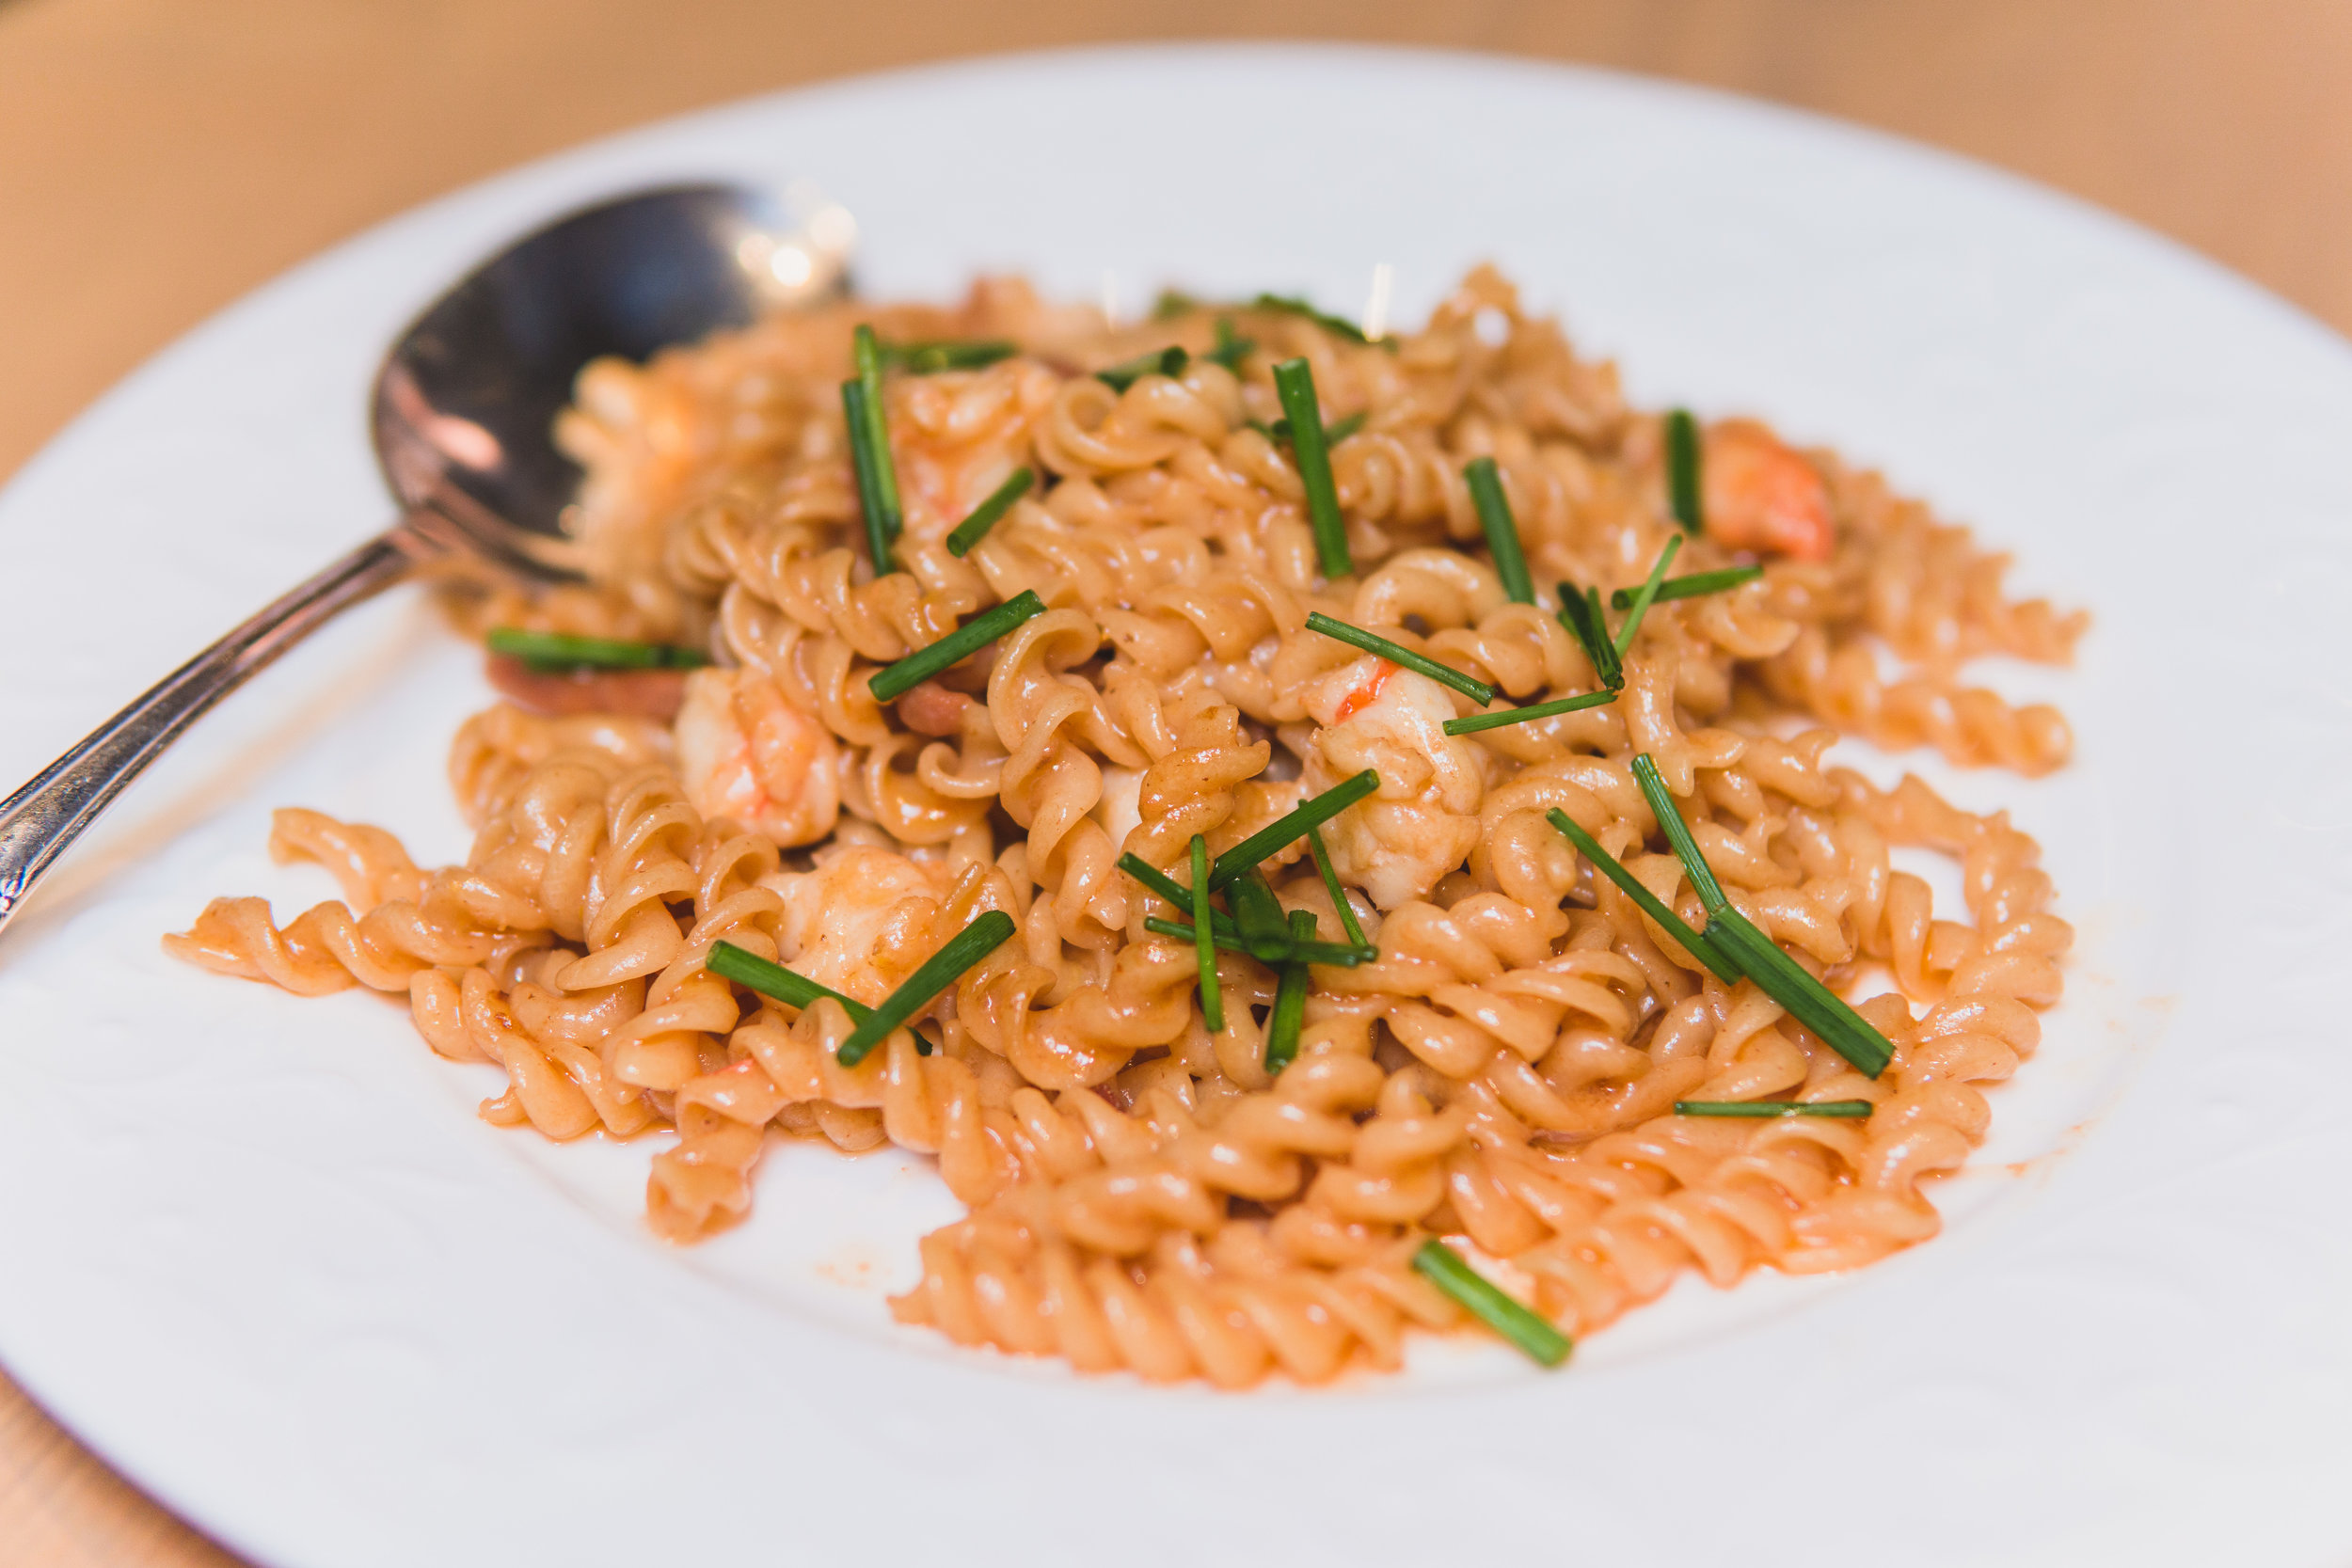 Fusilli: Key West pink shrimp, roasted shell butter, prosciutto di parma, chives